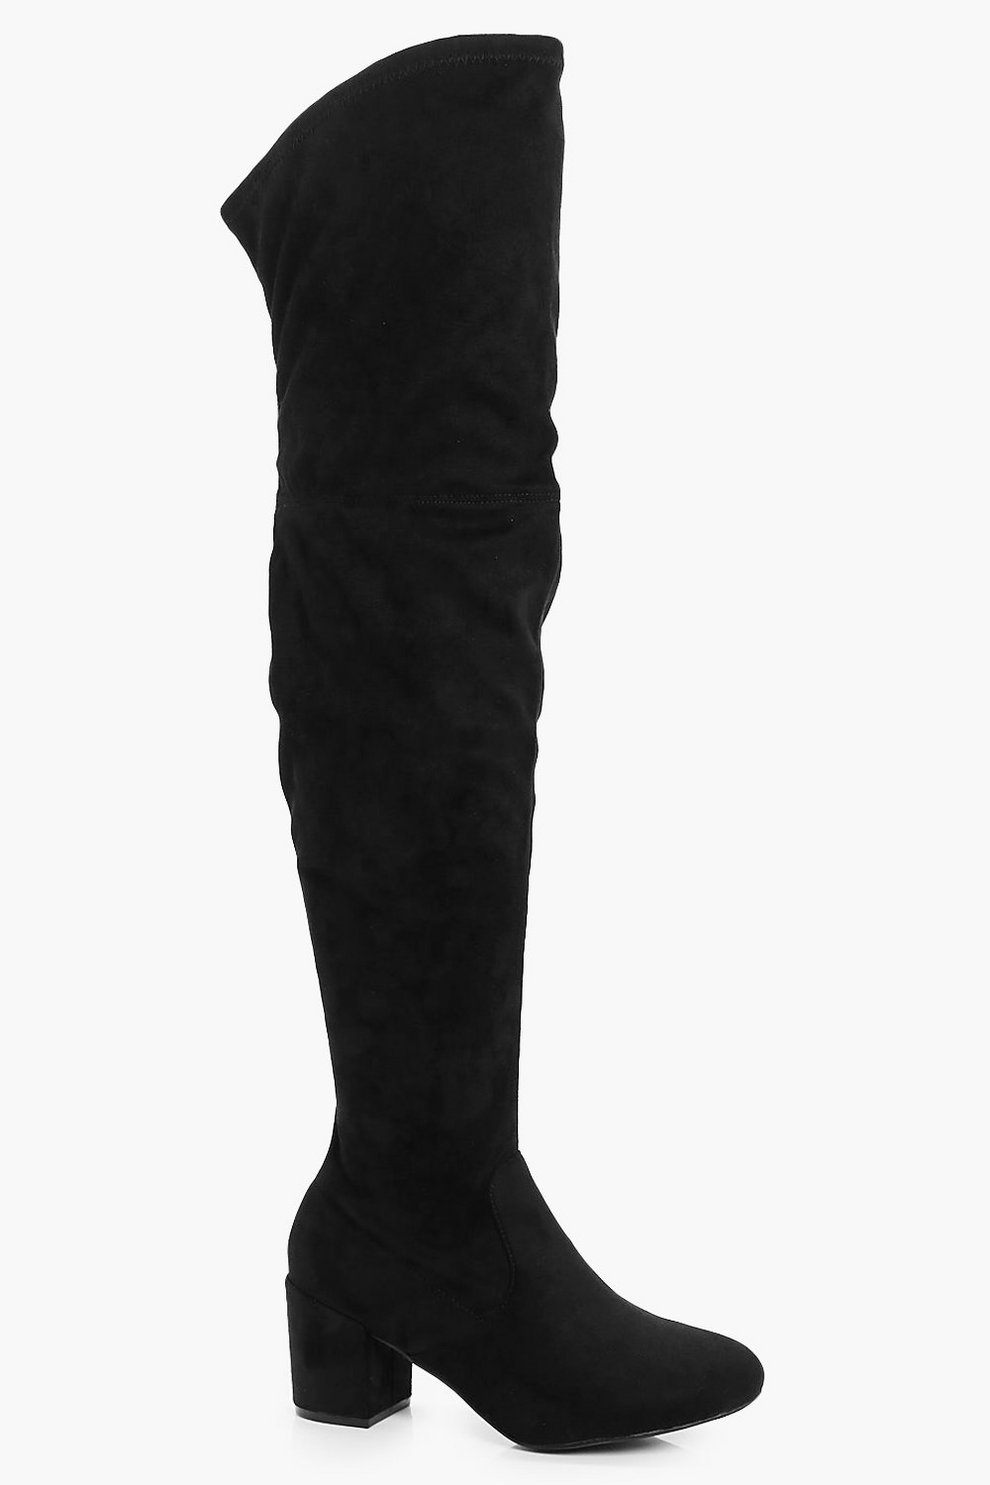 3b94d1502dd Extra Wide Fit Block Heel Over The Knee Boots